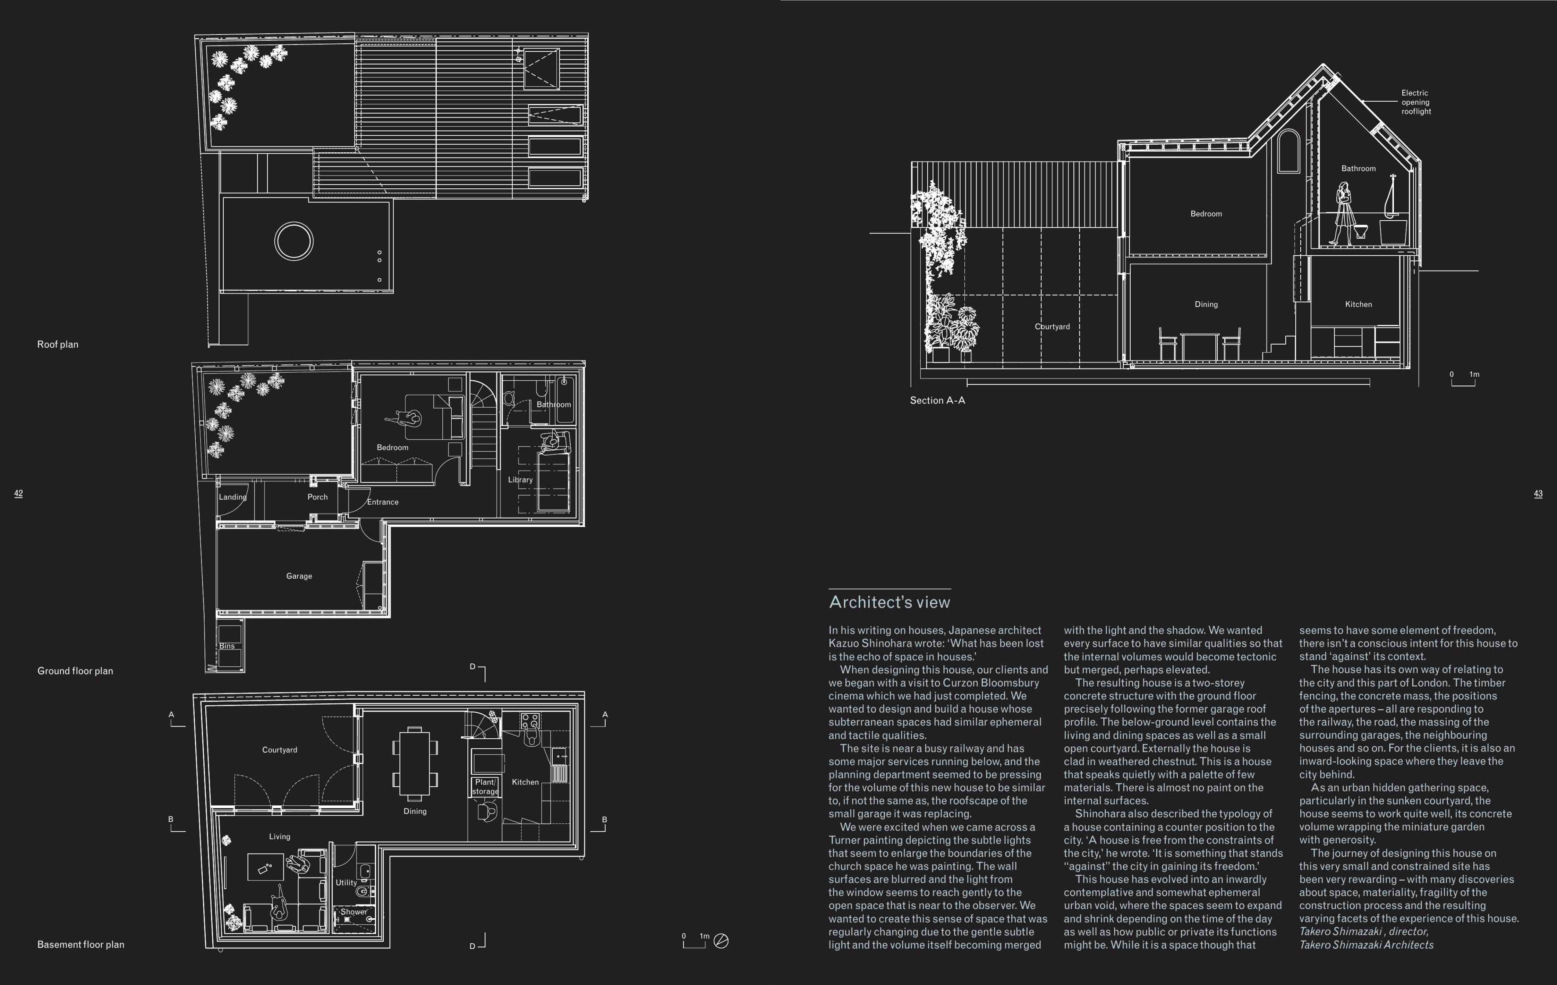 t-sa_Tiverton_Architects Journal_05